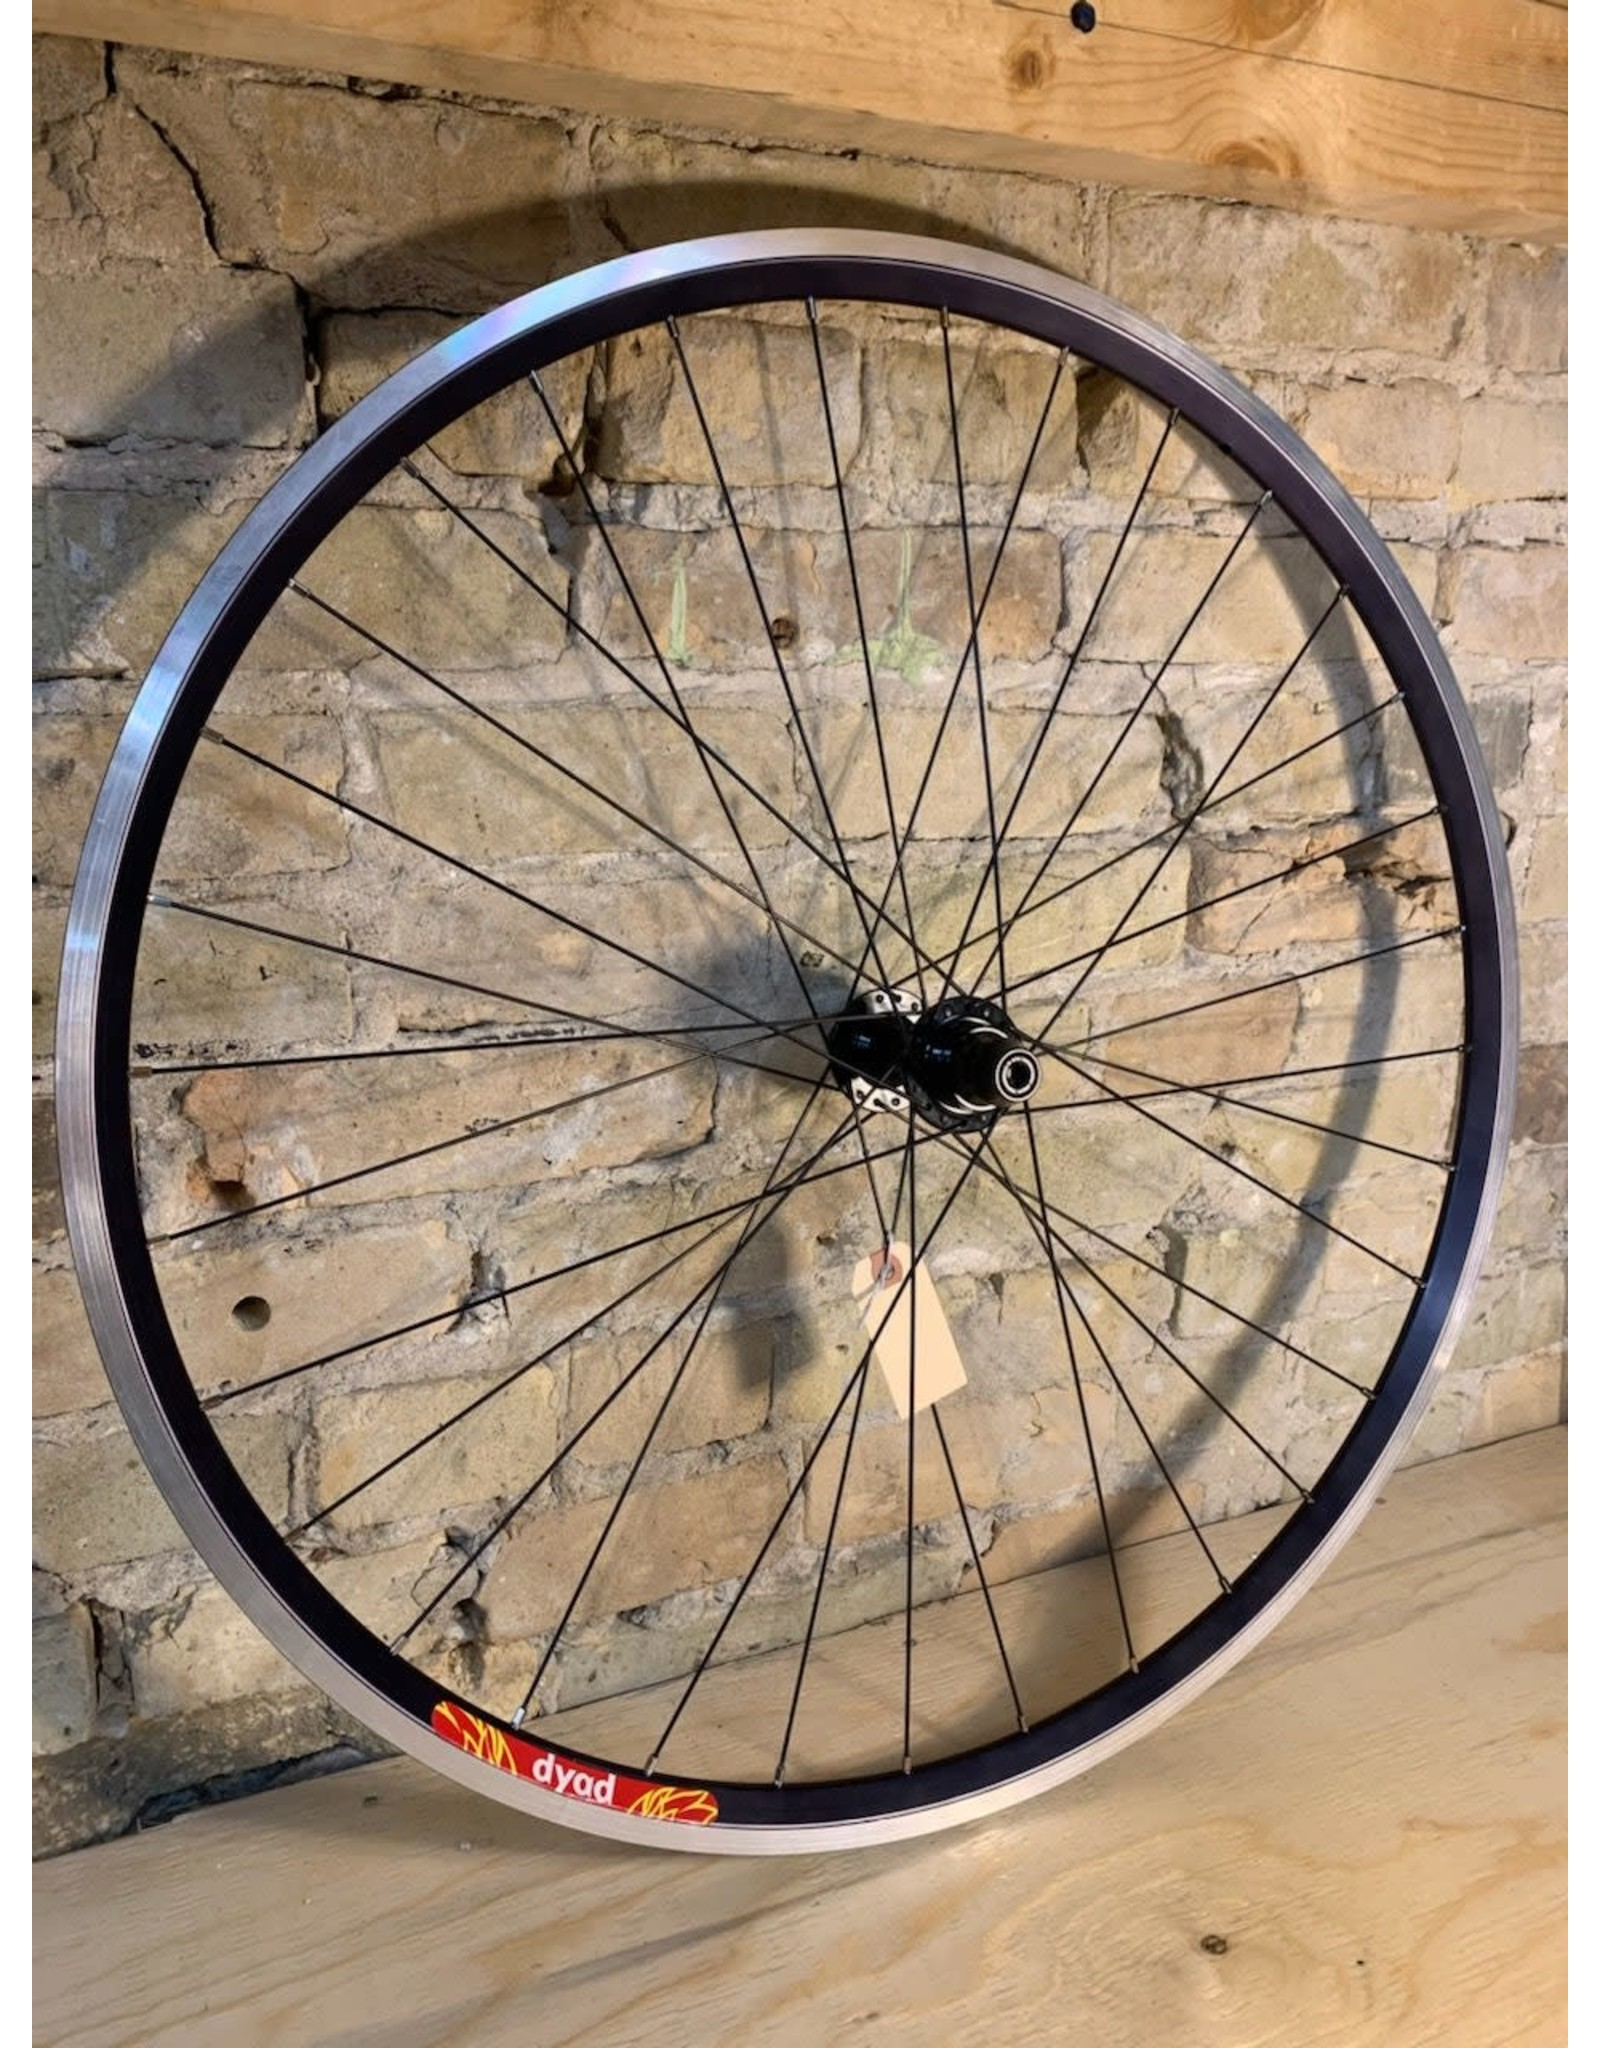 Natural Cycleworks Handbuilt Wheel Set - Velocity Dyad - Bassi Track - Double Butted Spokes